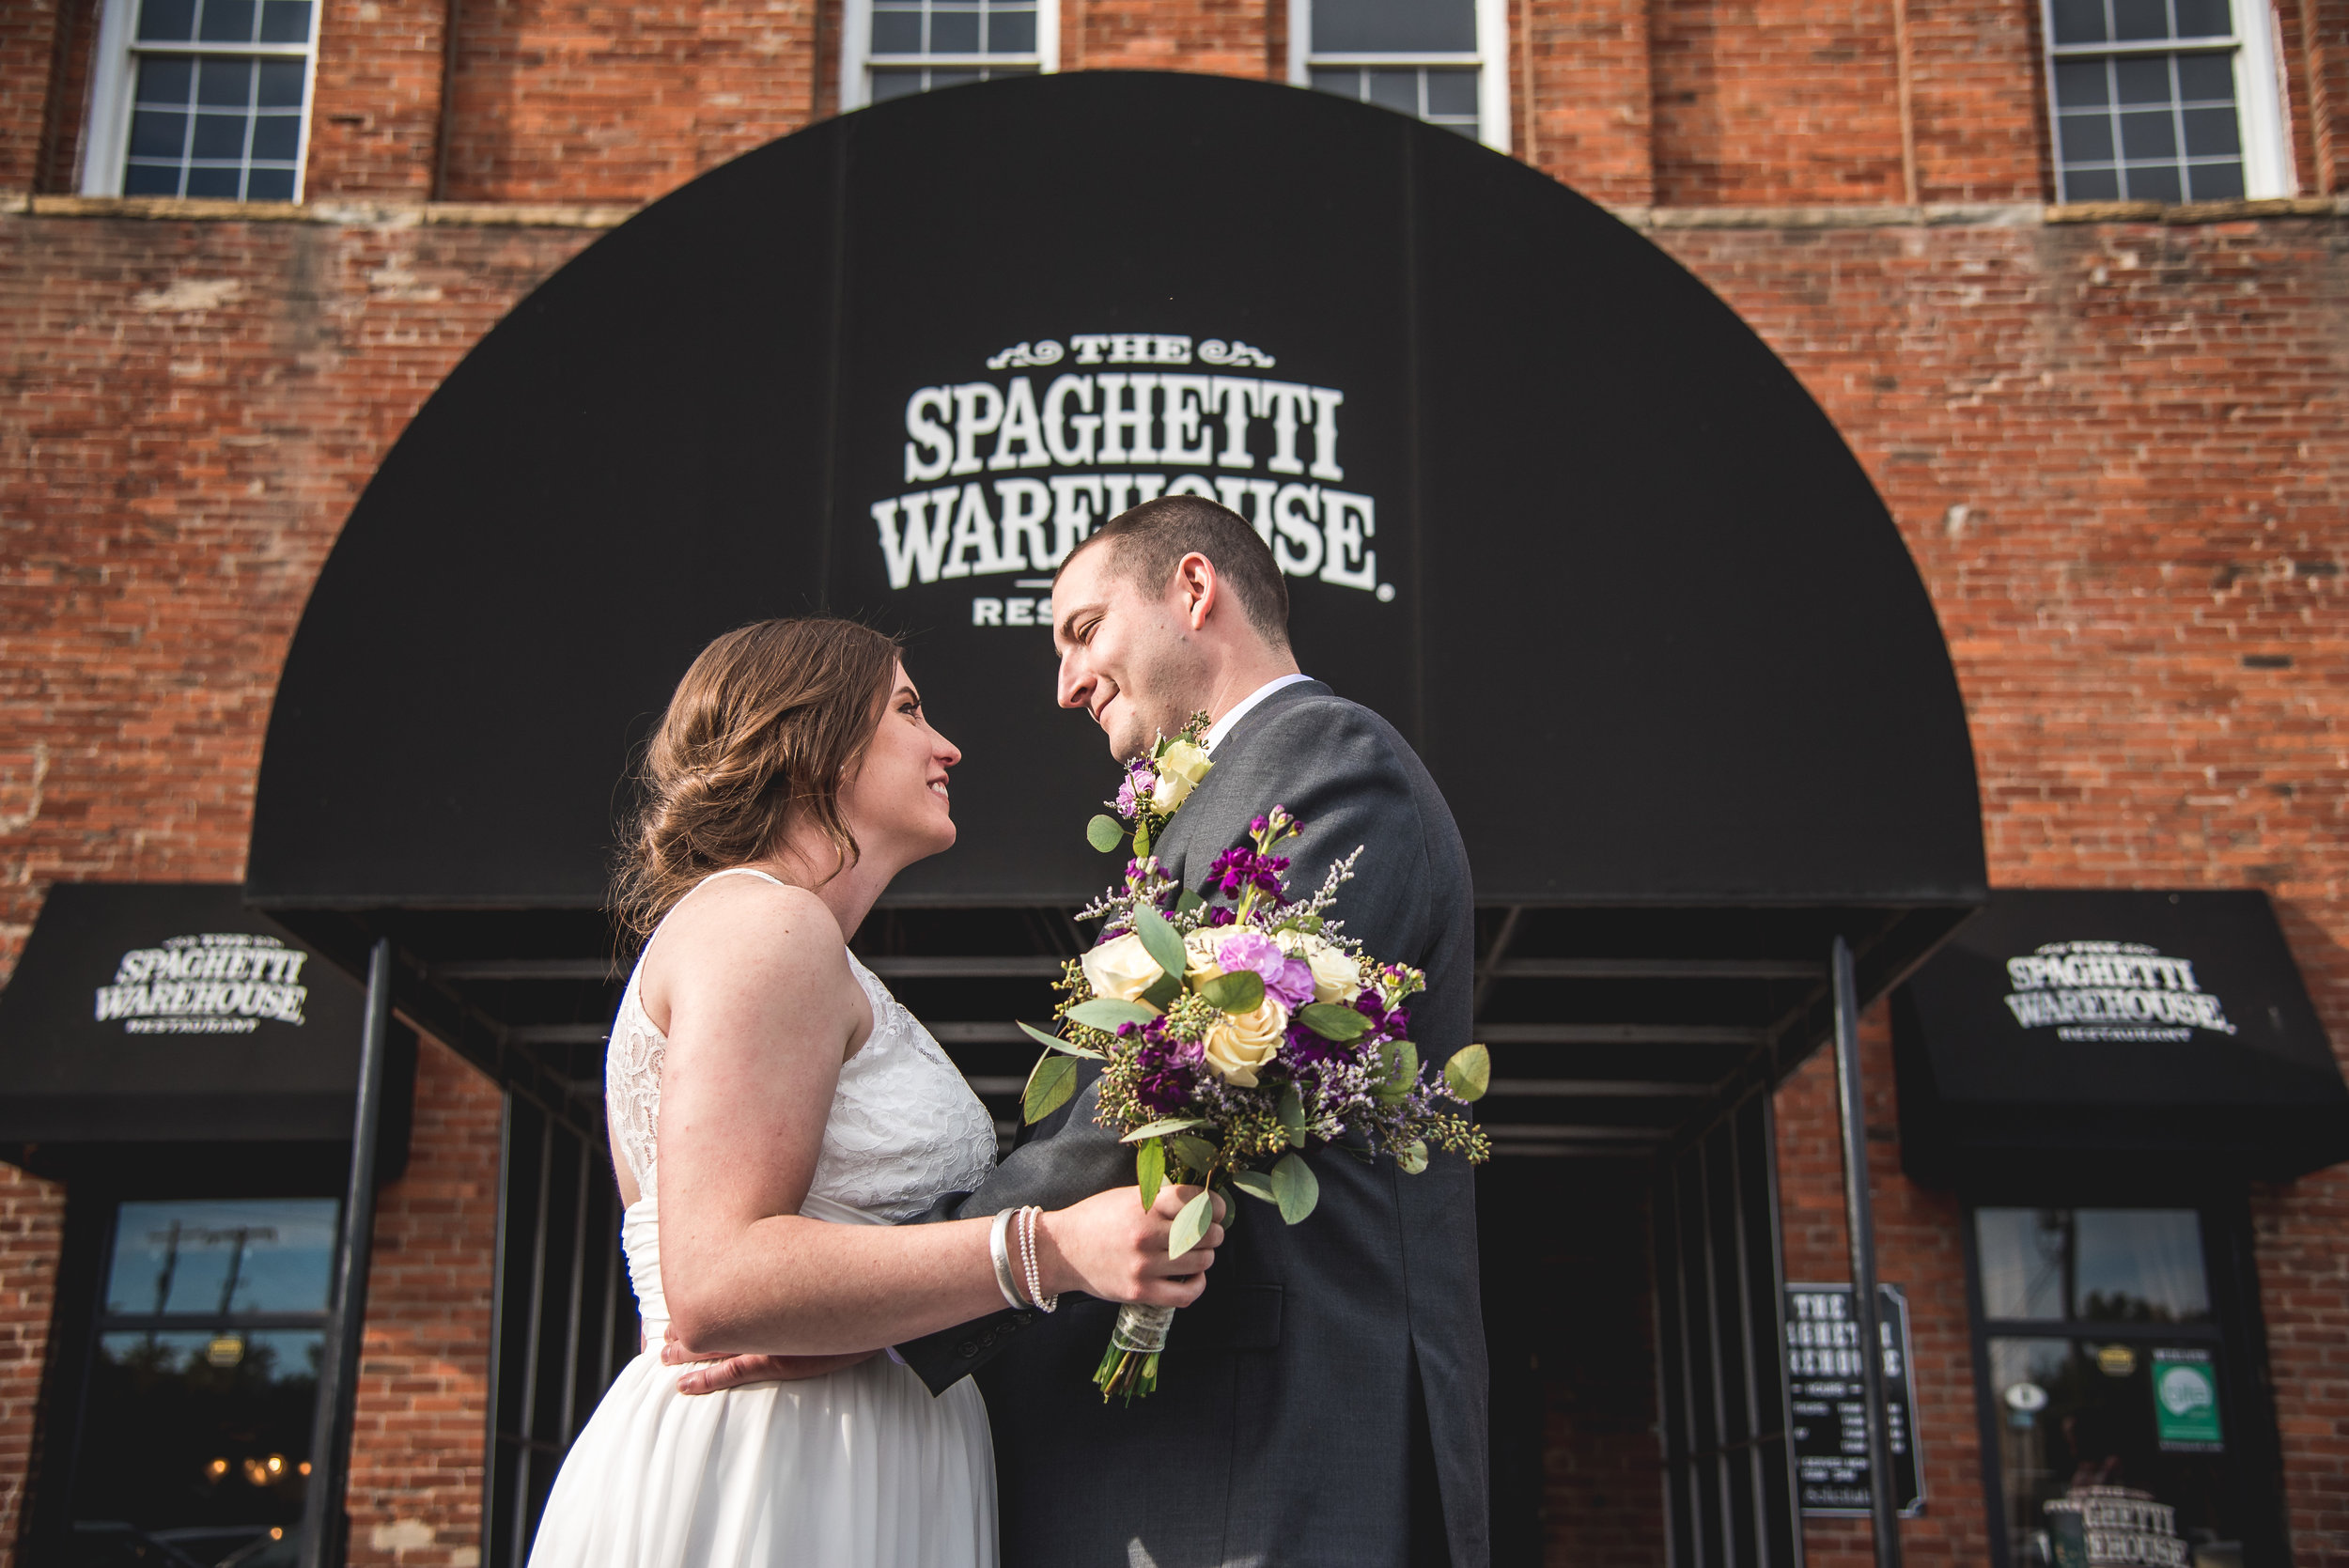 Columbus Ohio Wedding photographer | Amanda Noel Photography | married in the Spaghetti Warehouse